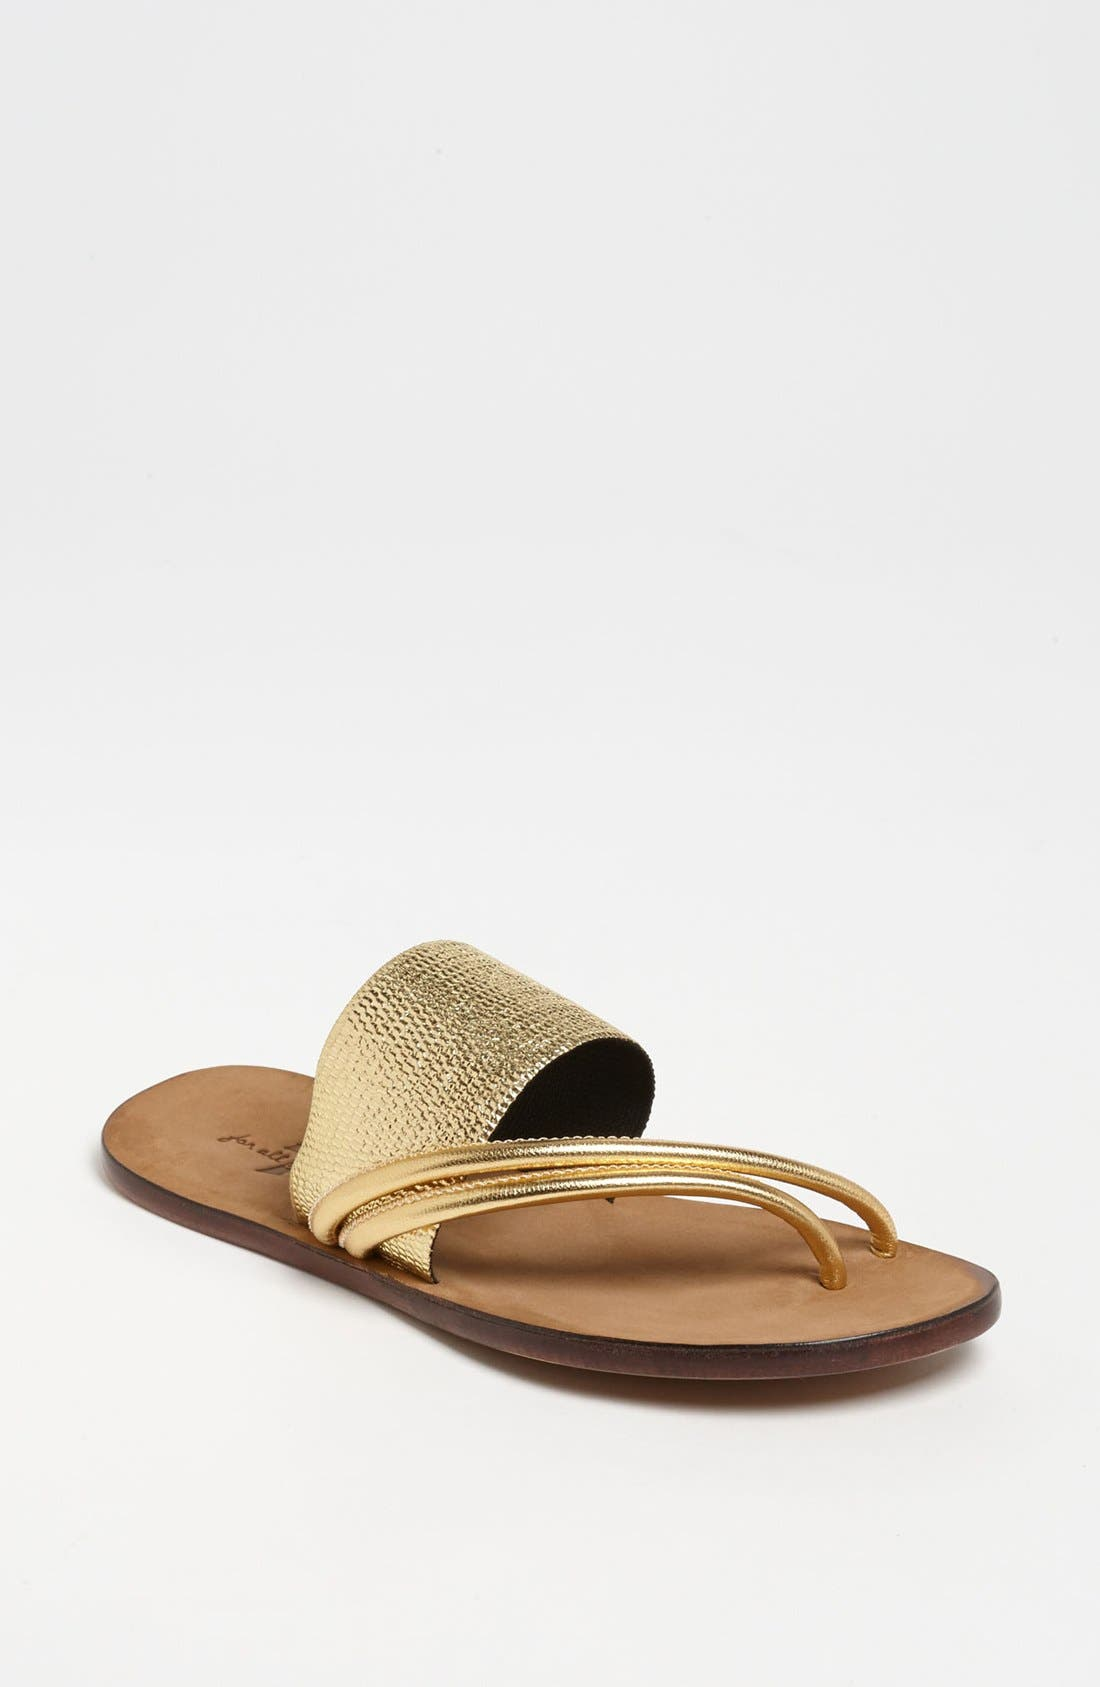 Main Image - 7 For All Mankind® 'Zaira' Sandal (Online Only)